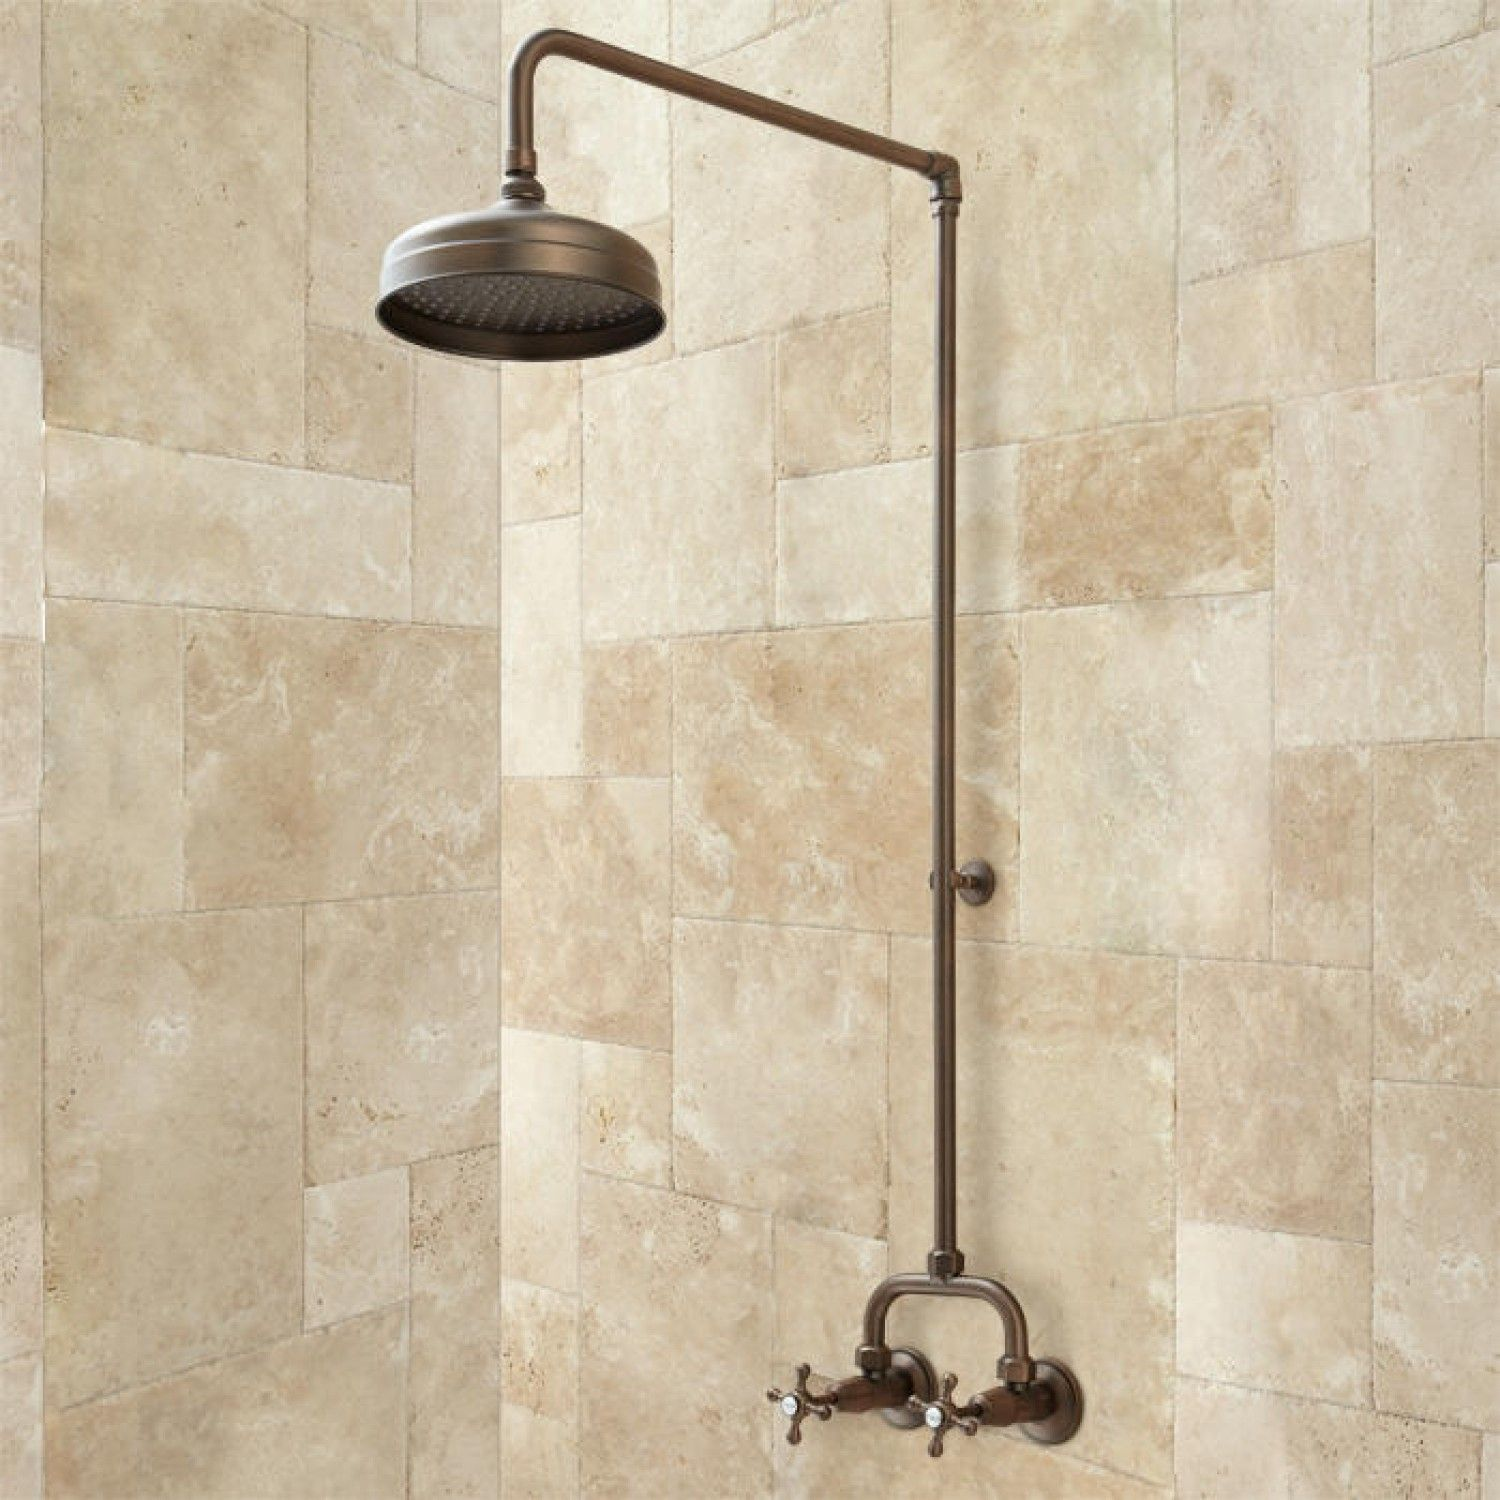 School Bathroom Fixtures baudette exposed pipe wall-mount shower with rainfall shower head